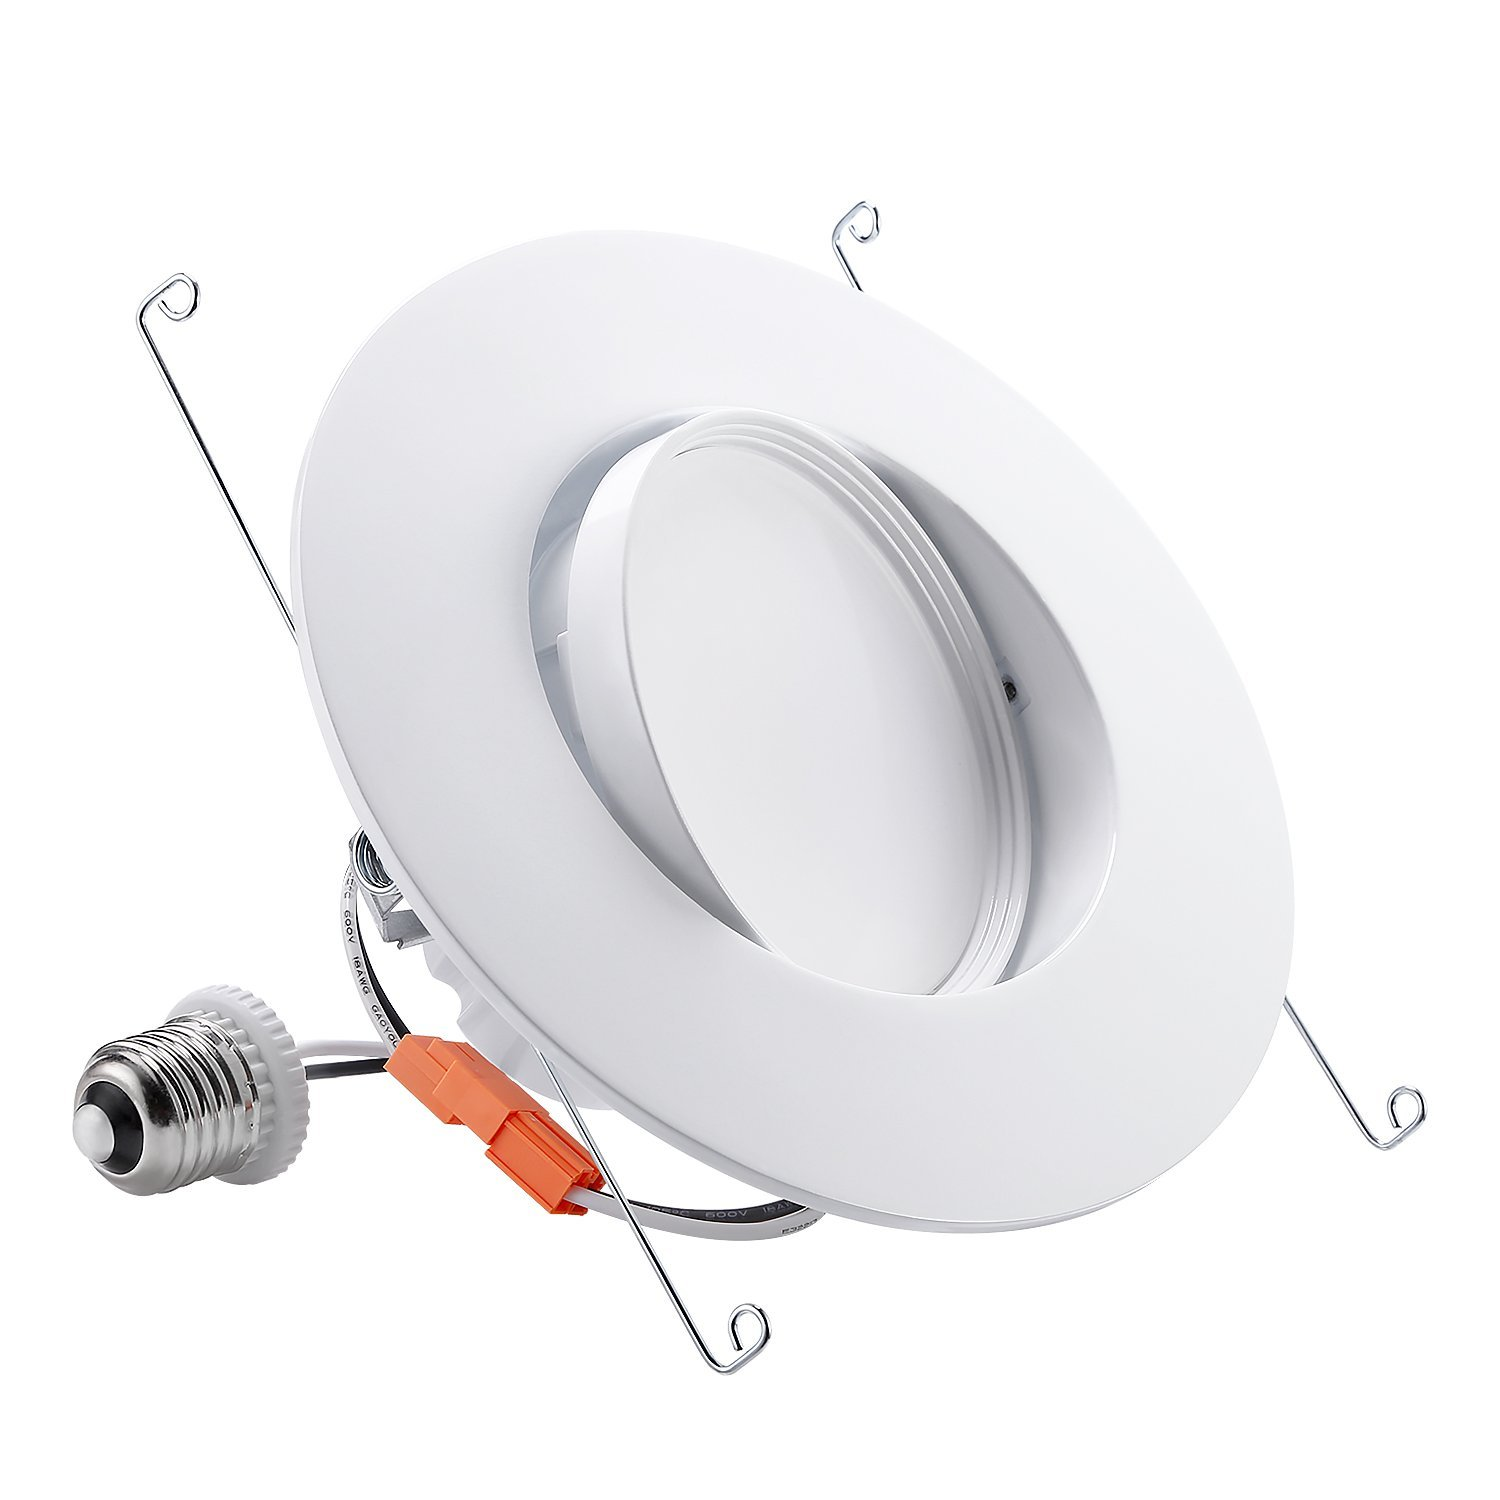 TORCHSTAR 5/6-Inch Retrofit LED Gimbal Downlight, 900lm, 13W (100W Equiv.), UL & ENERGY STAR Certified Dimmable Recessed Light, CRI90+, 5000K Daylight, 5 YEARS WARRANTY